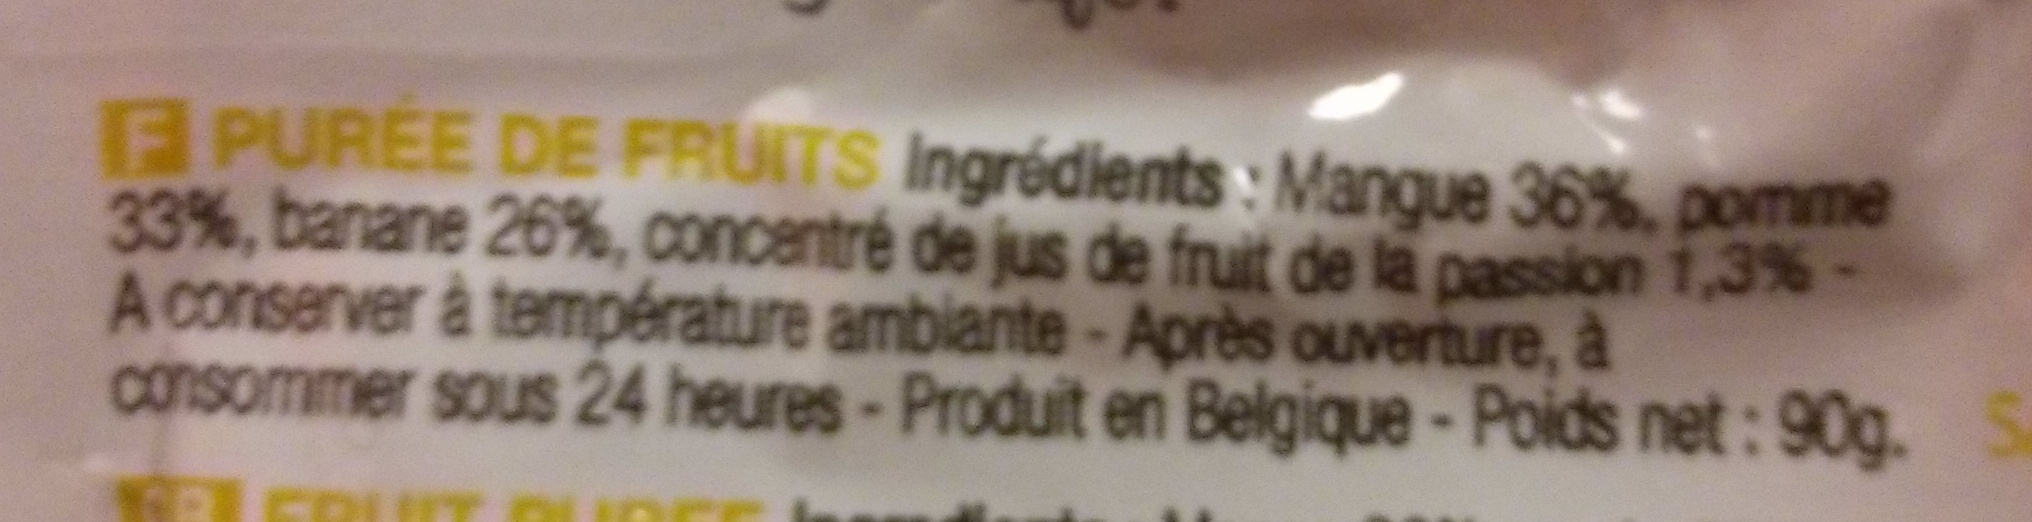 Buddy Fruits -  Mangue Pomme Passion - Ingredients - fr